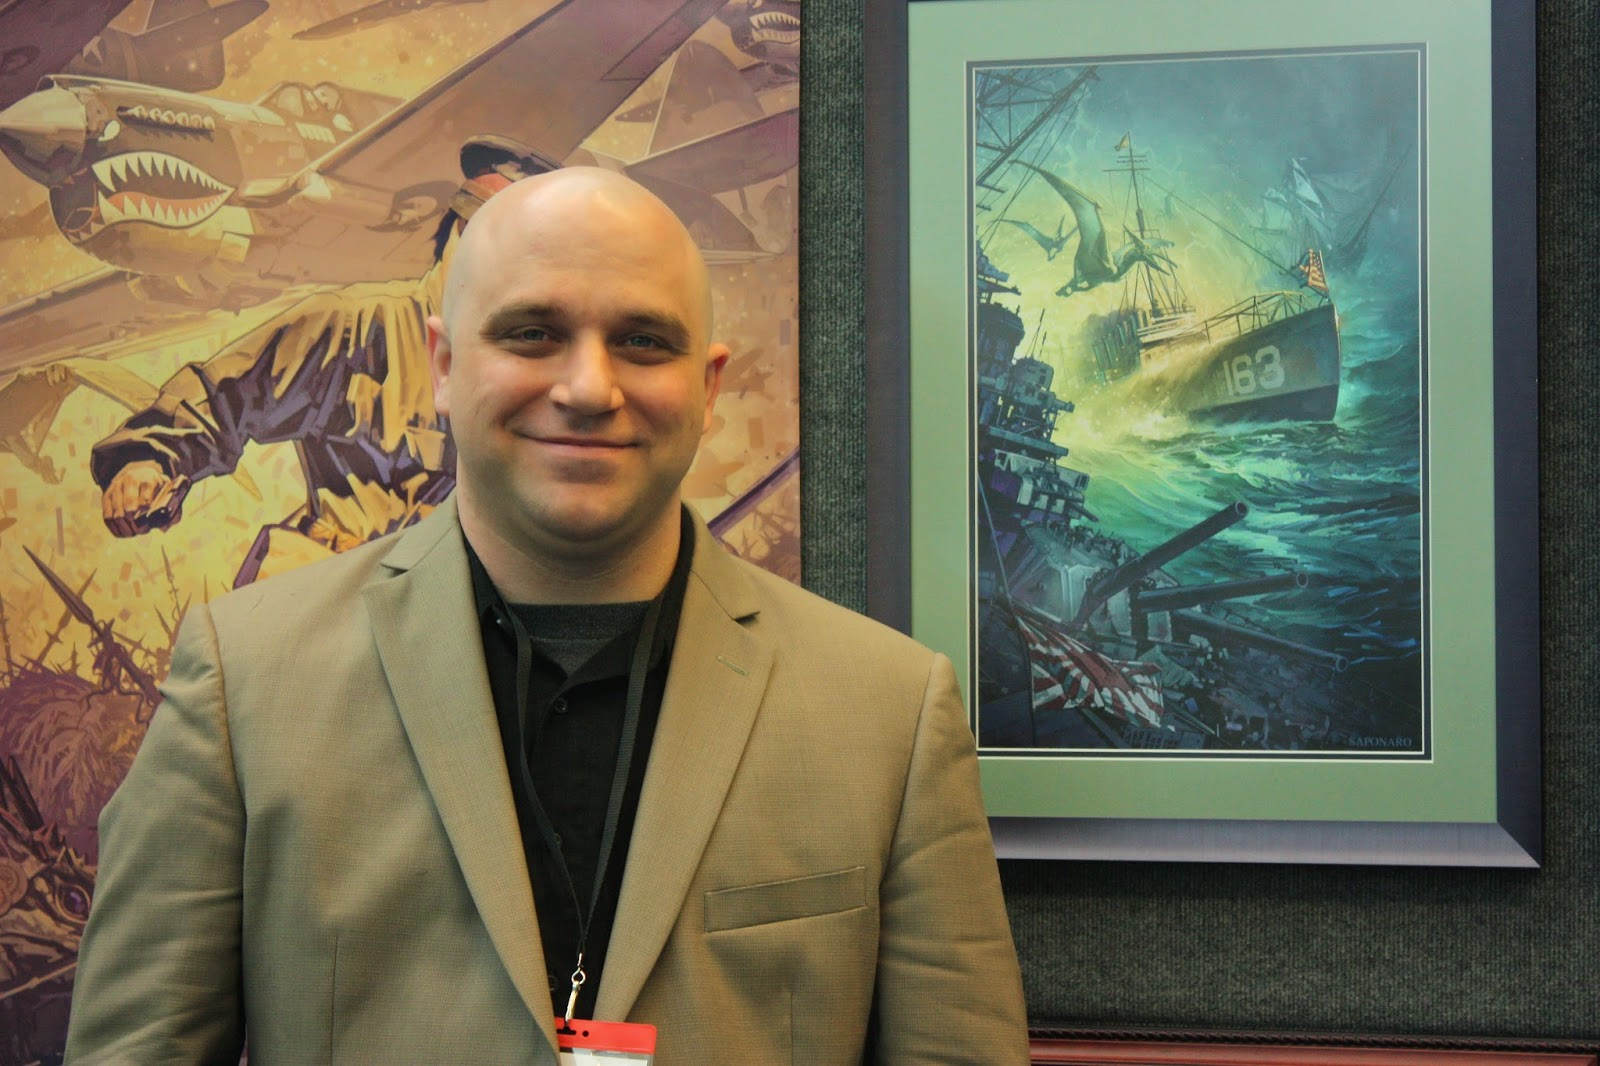 Dominick Saponaro at Spectrum Live in front of Destroyermen I Painting